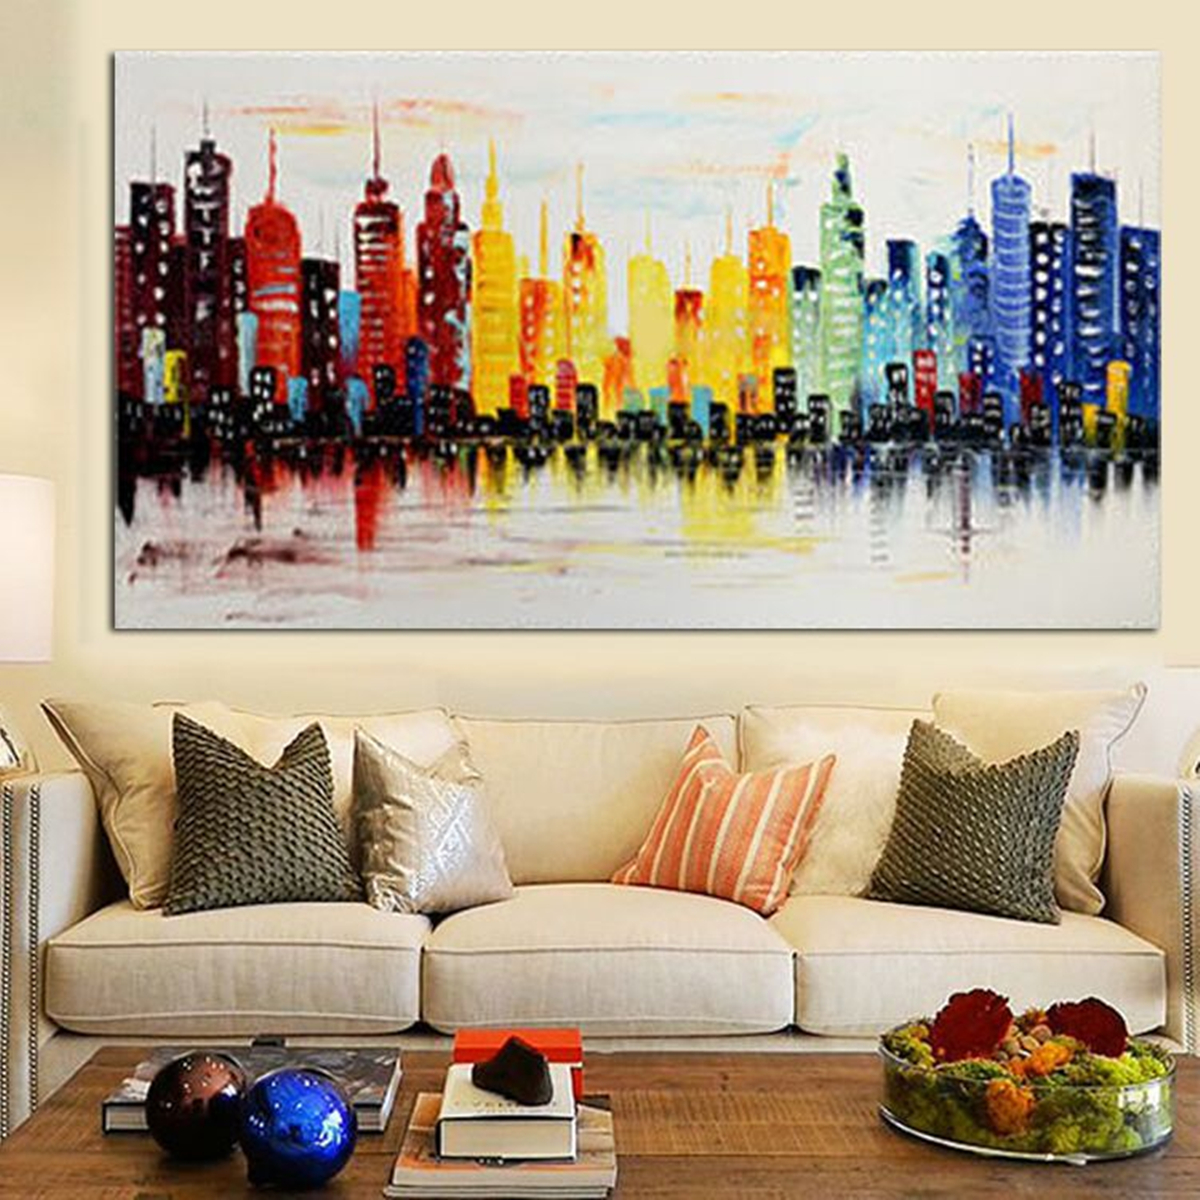 120x60cm modern city canvas abstract painting print living room art wall decor no frame. Black Bedroom Furniture Sets. Home Design Ideas